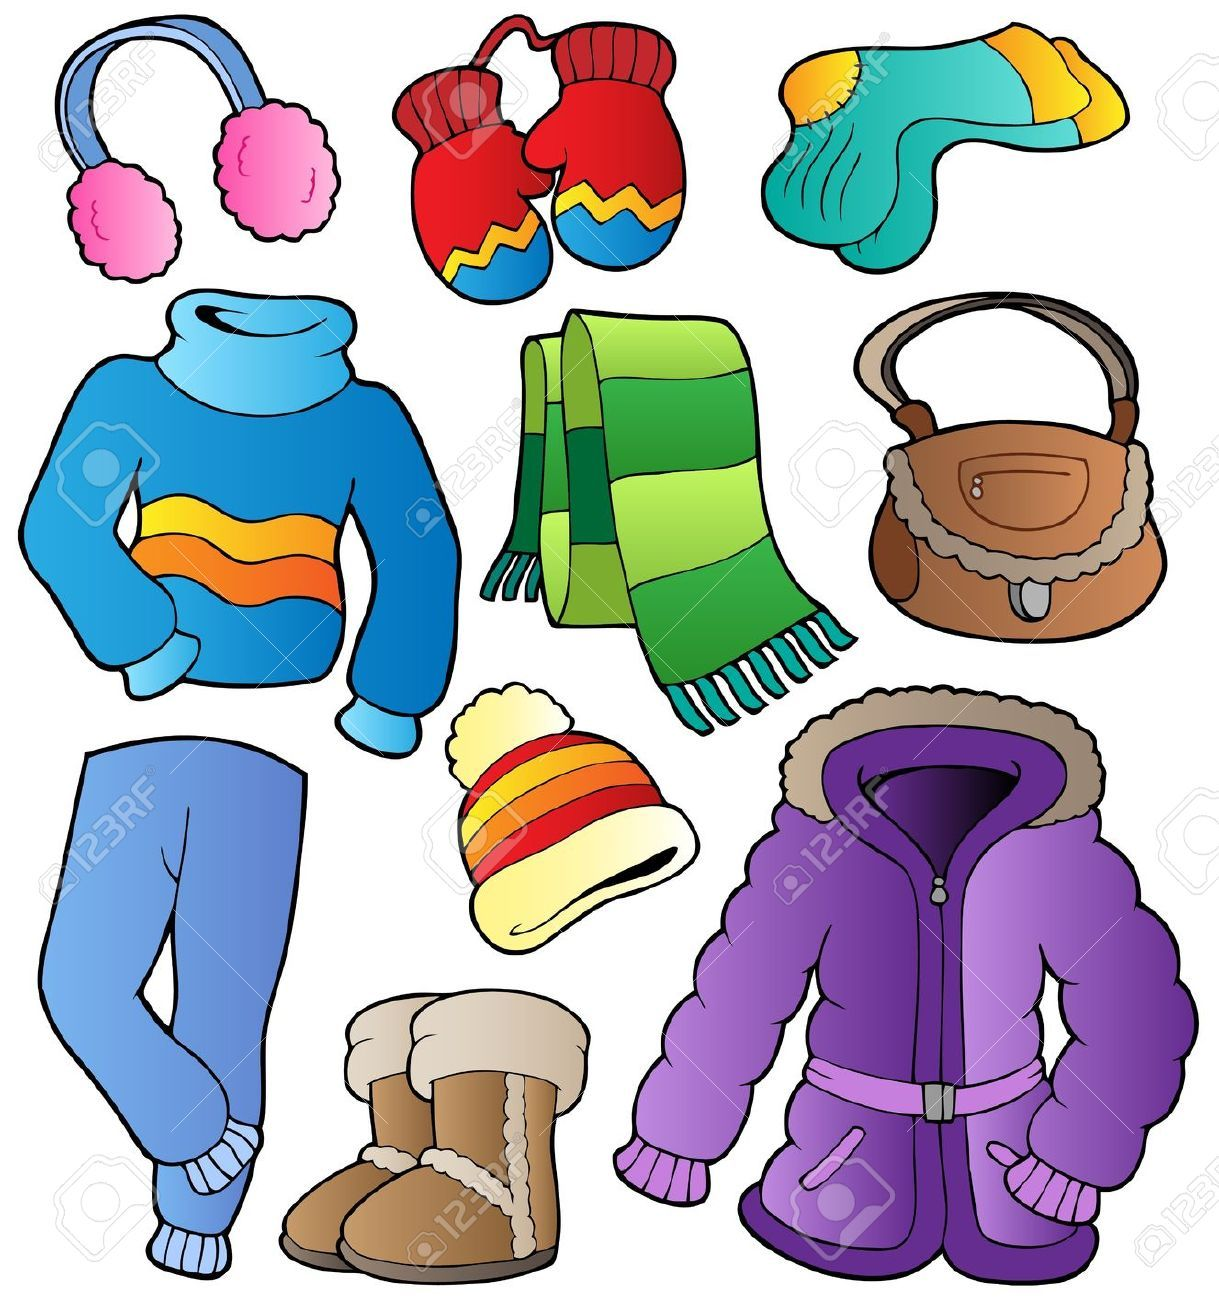 children in winter clothes coloring pages.